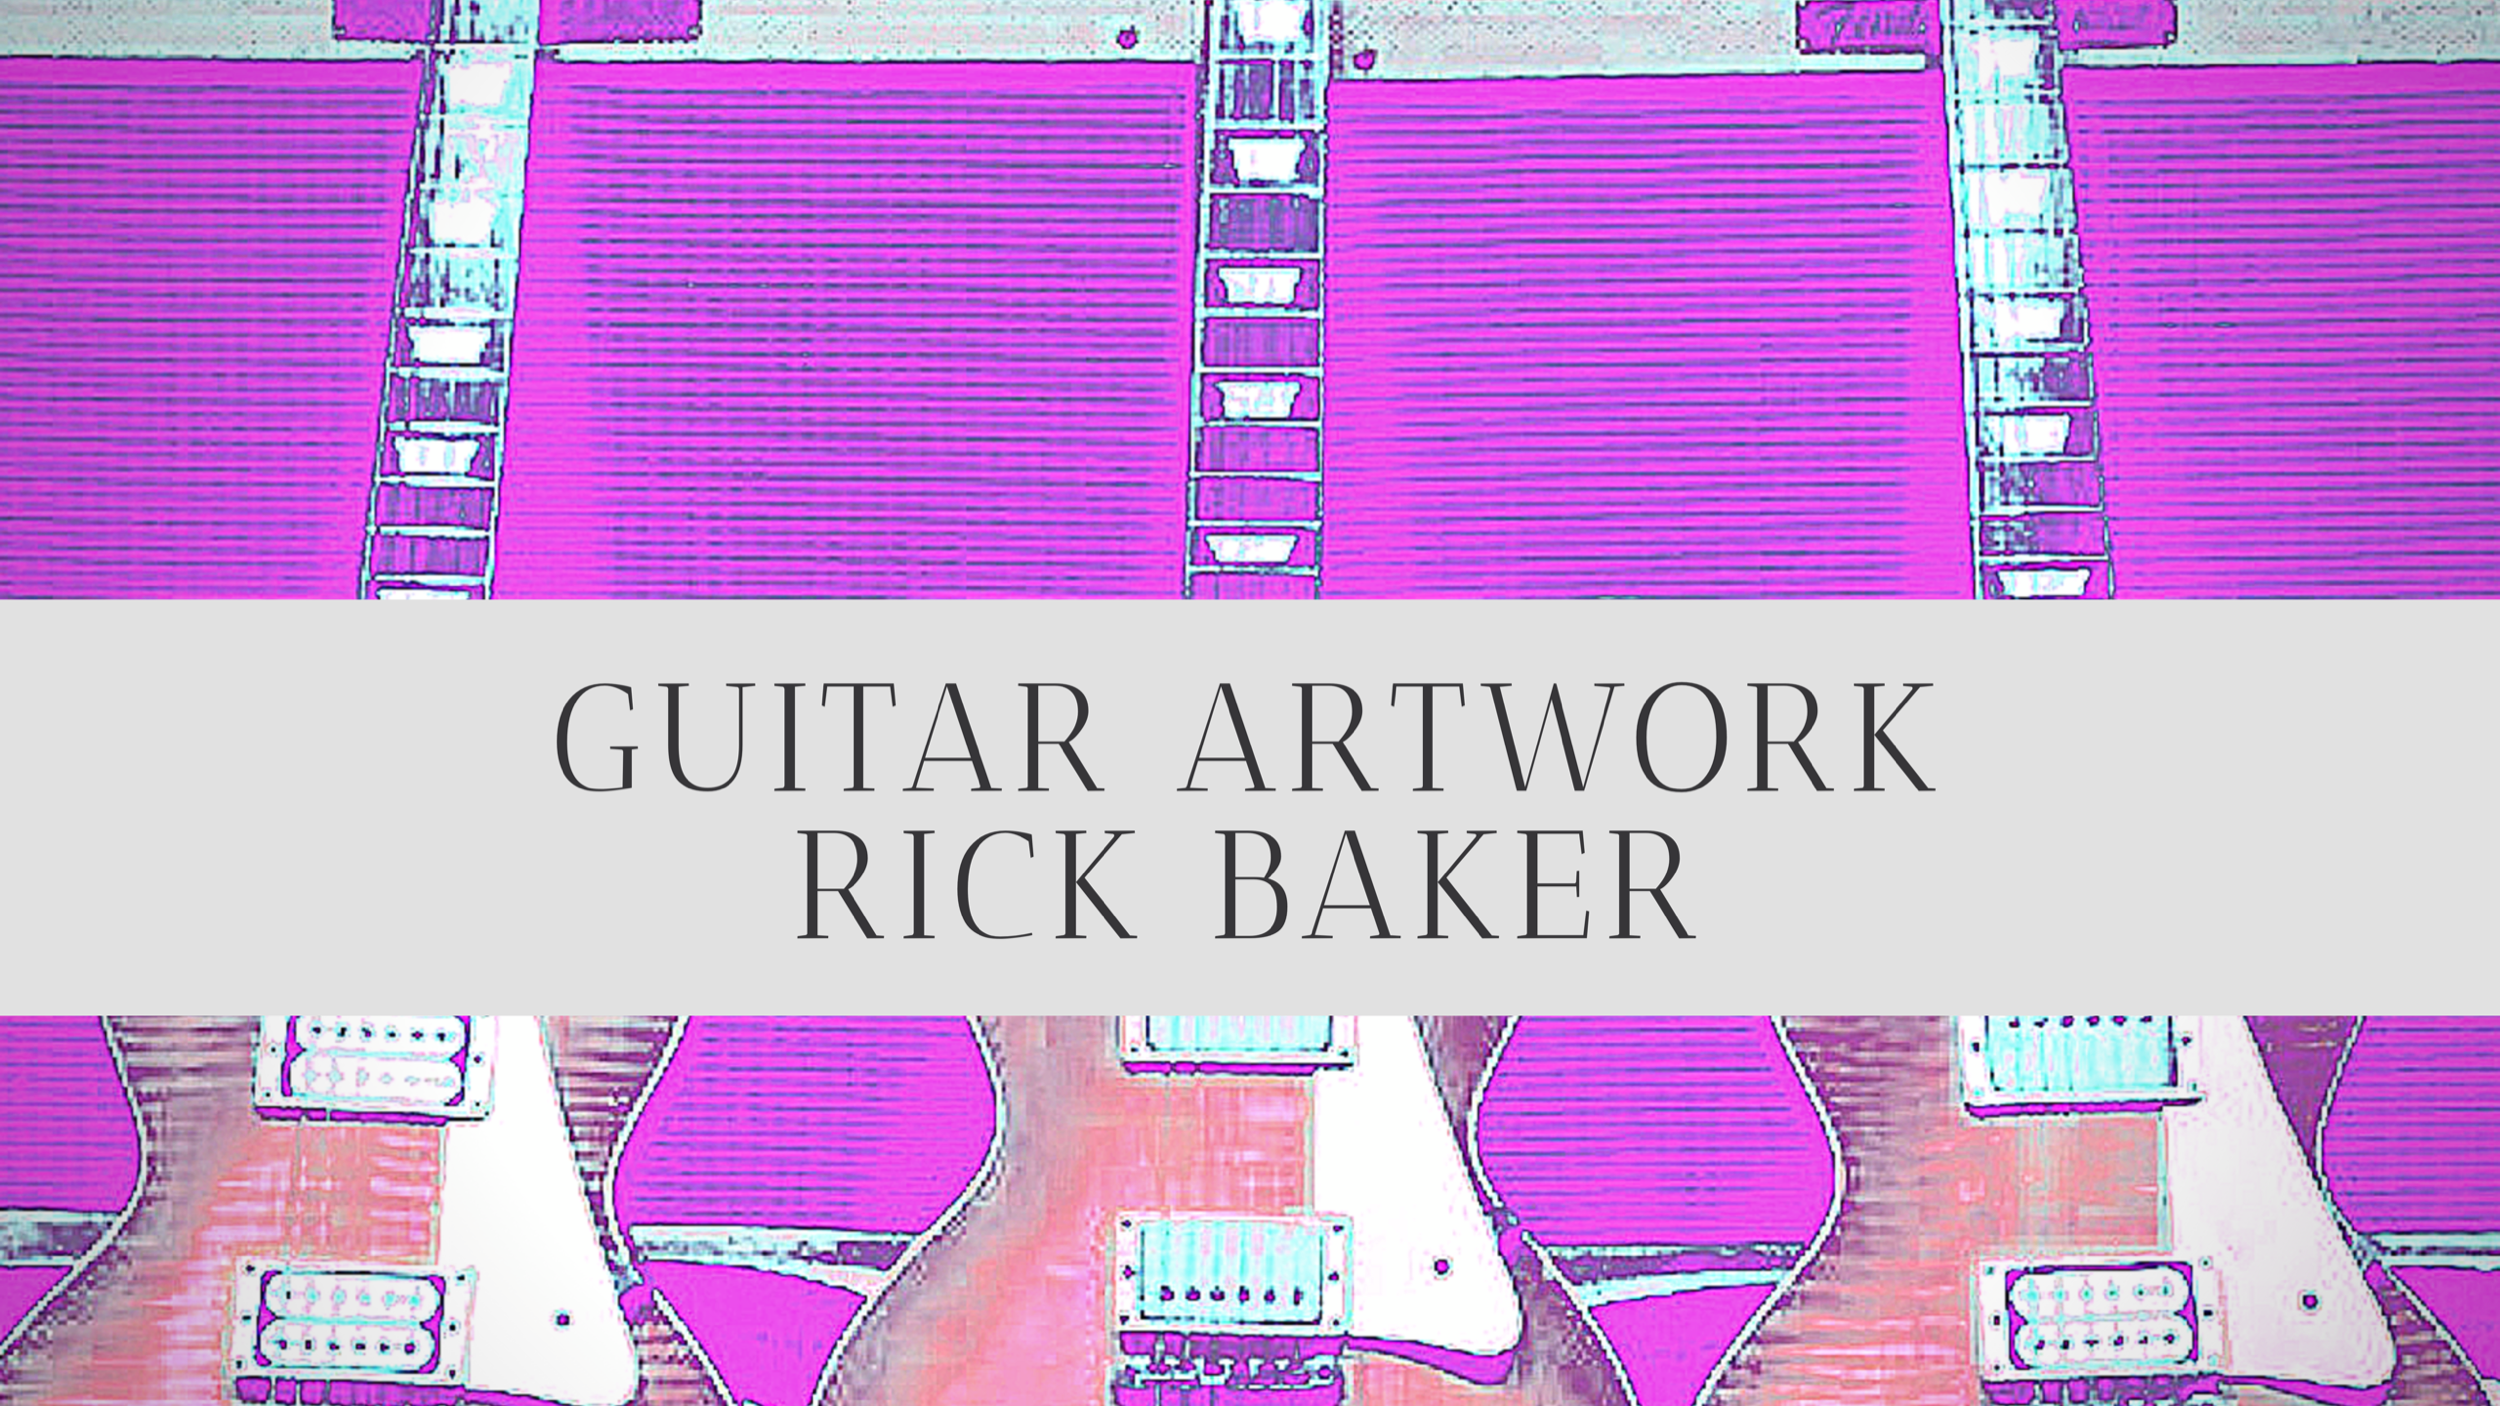 Guitar Artwork  Rick Baker.png